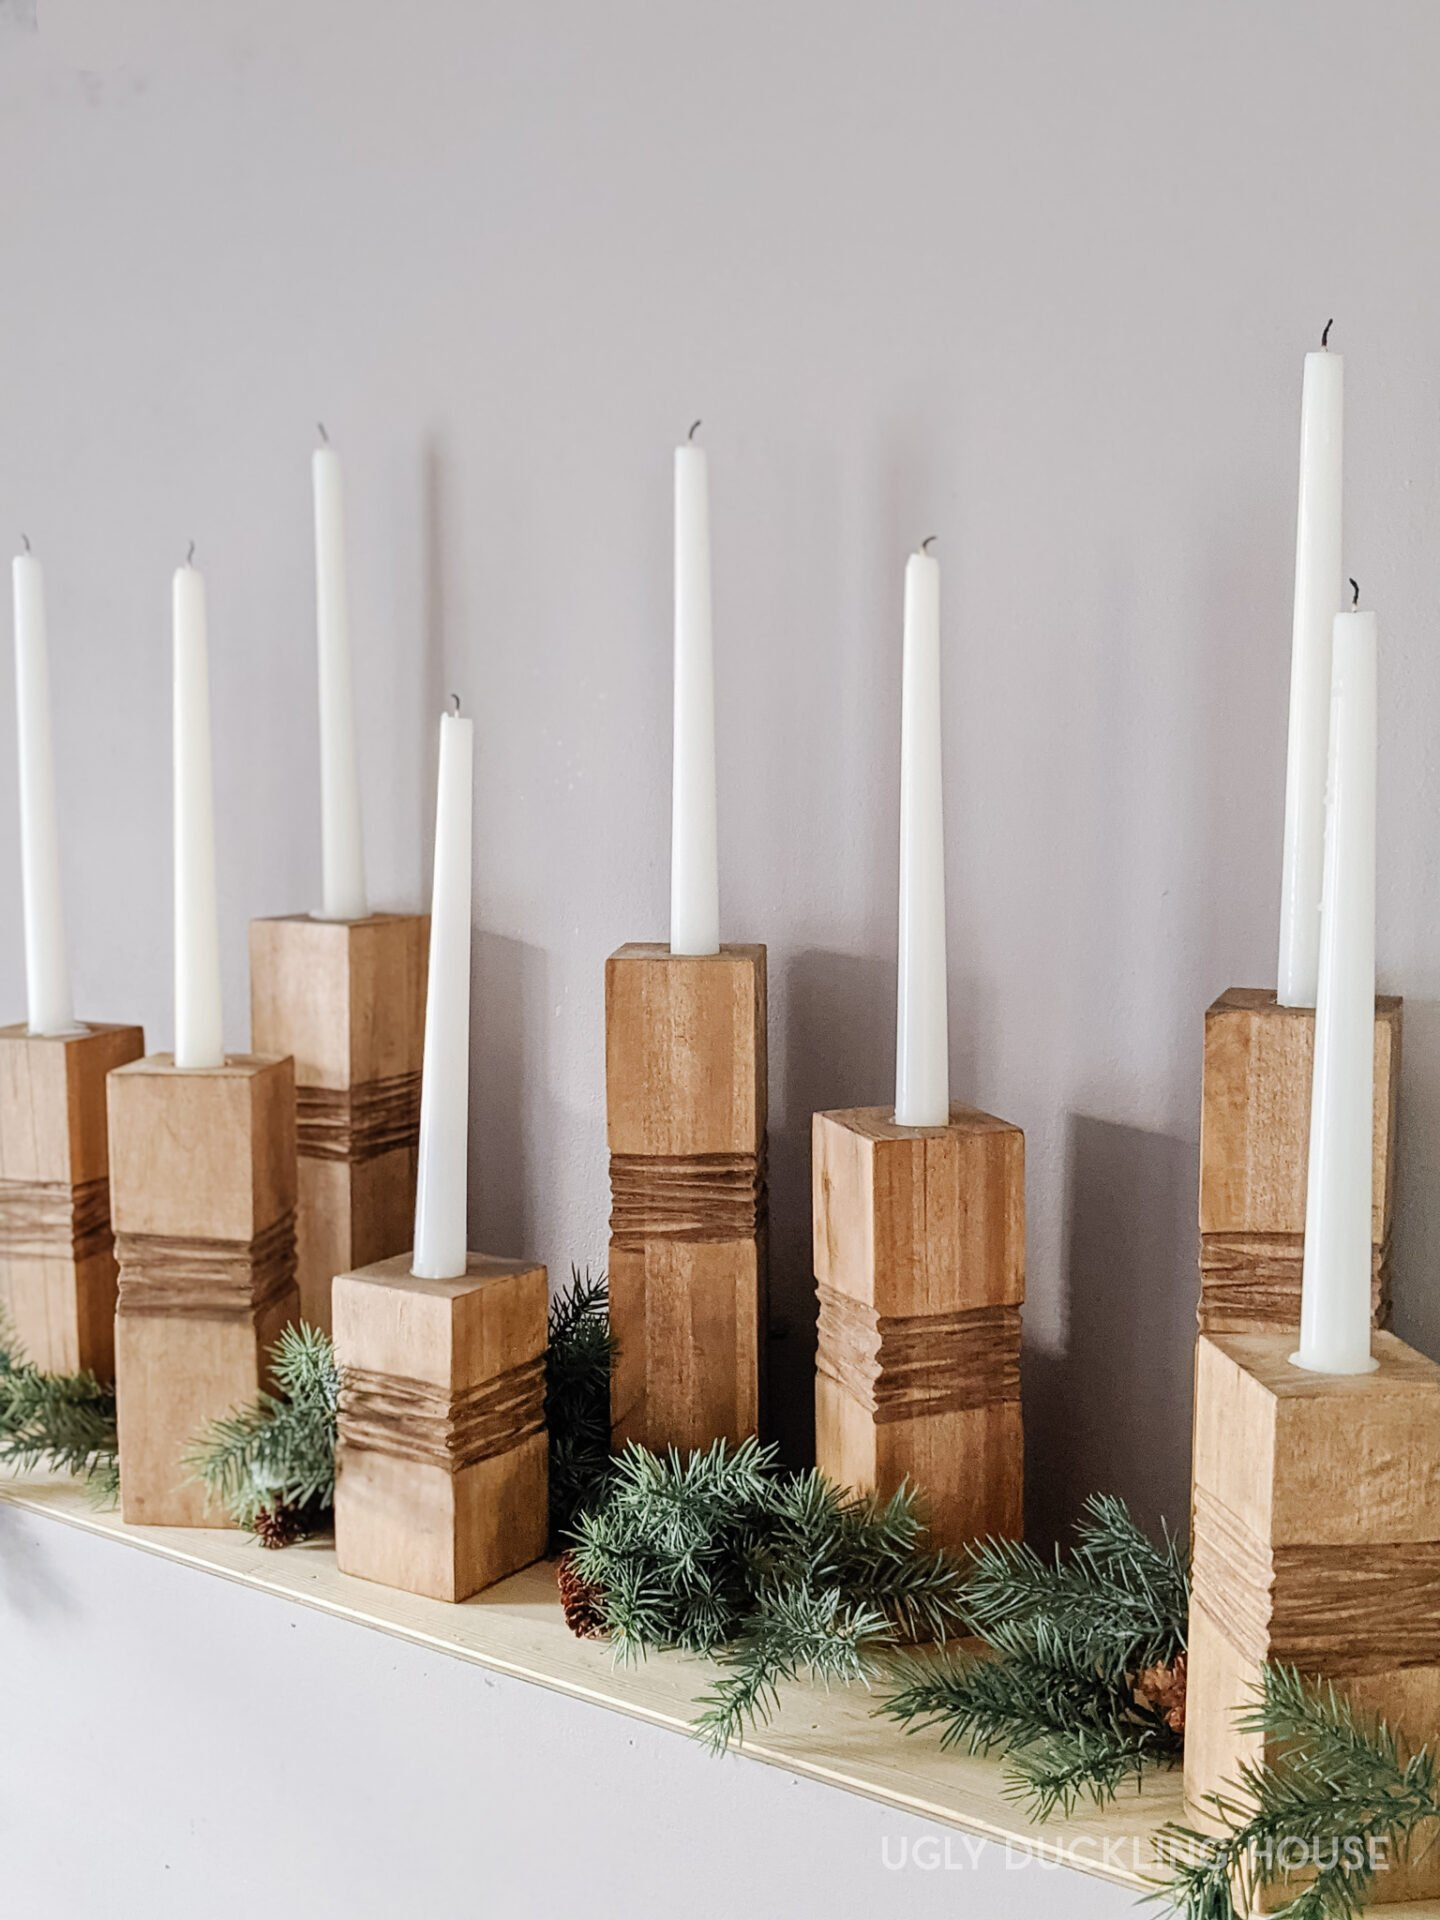 using wax to position tapered candles vertically for candlesticks